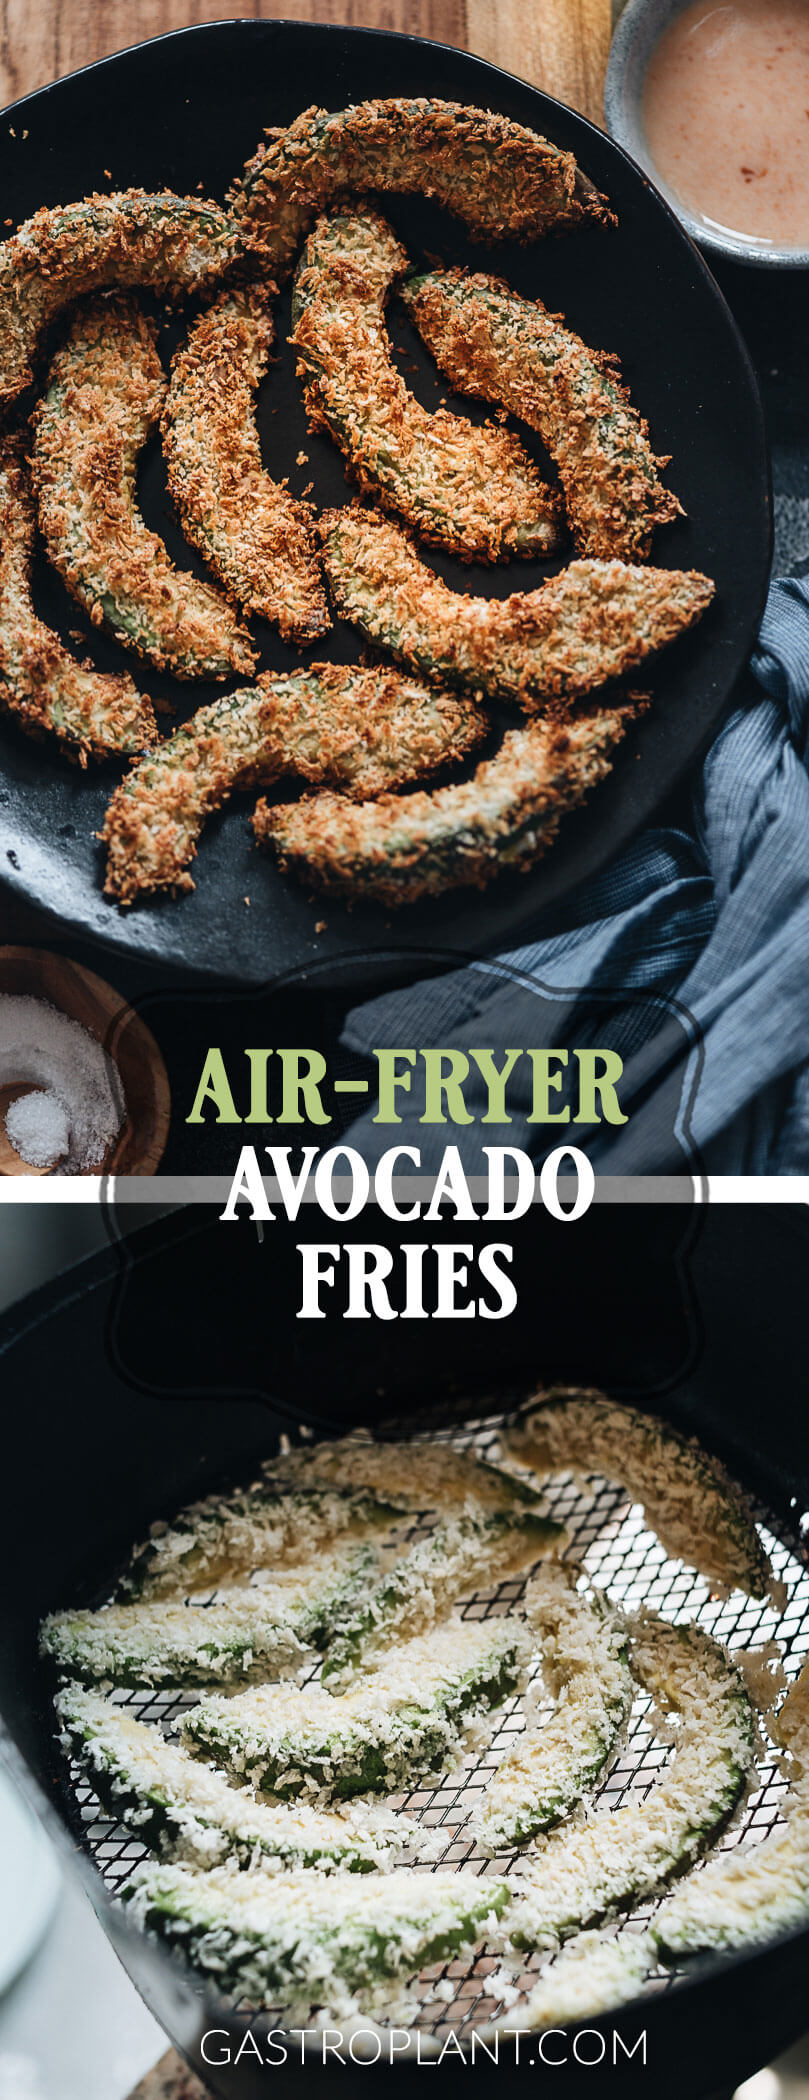 Easy Vegan Air Fryer Avocado Fries Collage